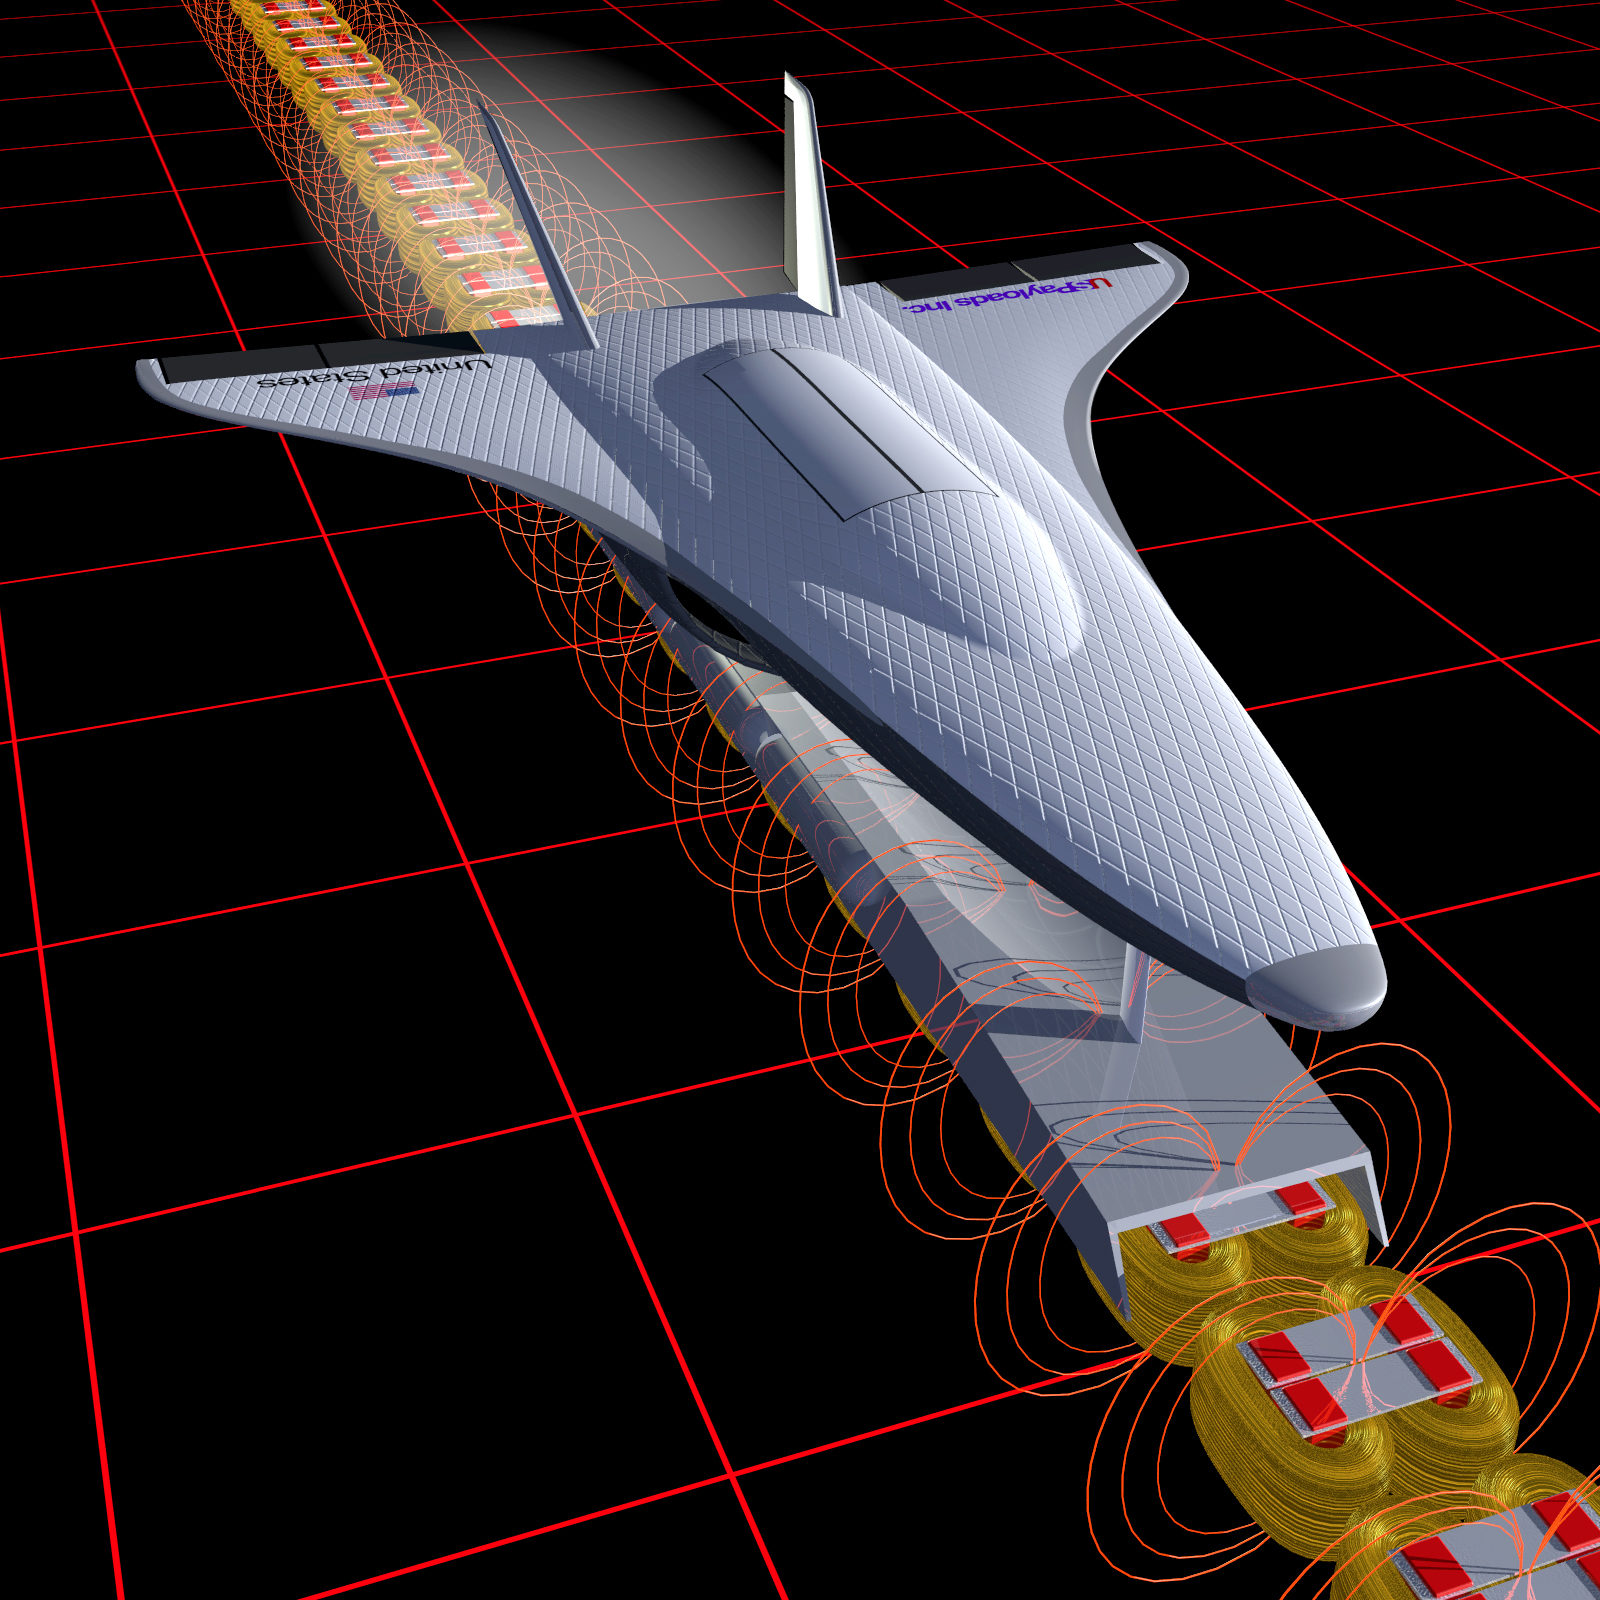 Computer Rendering of a Maglev shuttle propulsion system.